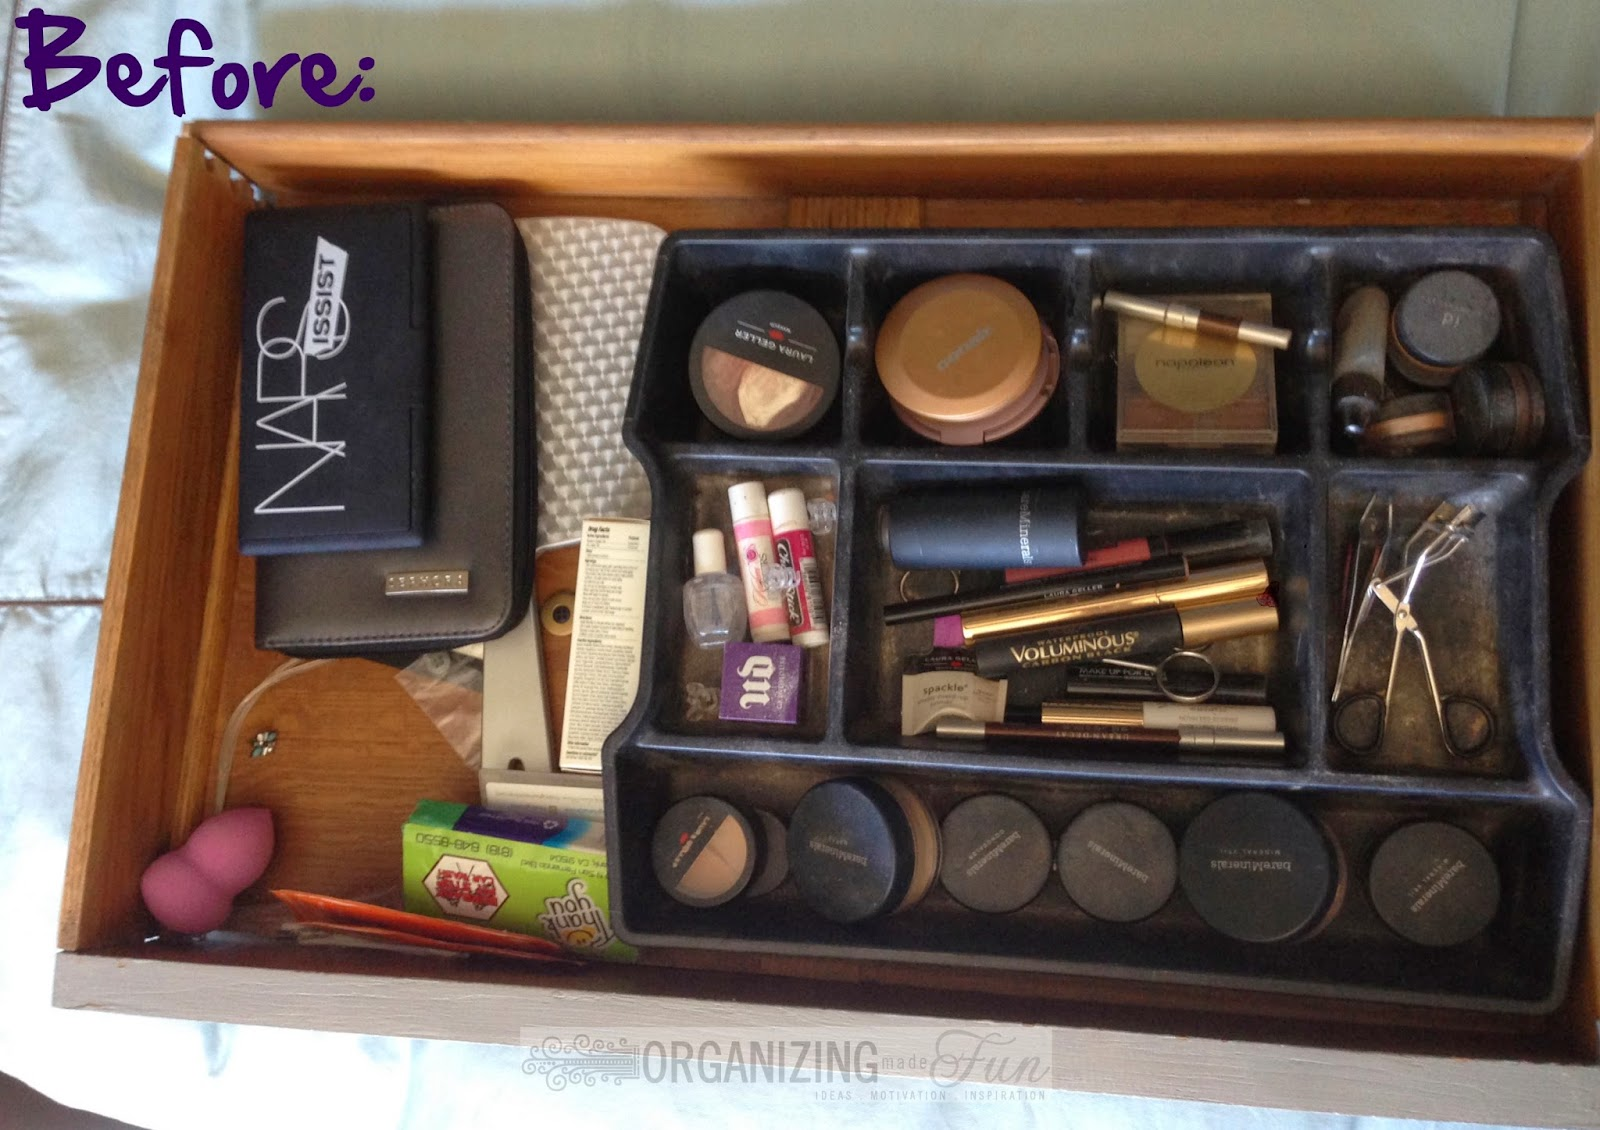 Make Up Organization - BEFORE :: OrganizingMadeFun.com